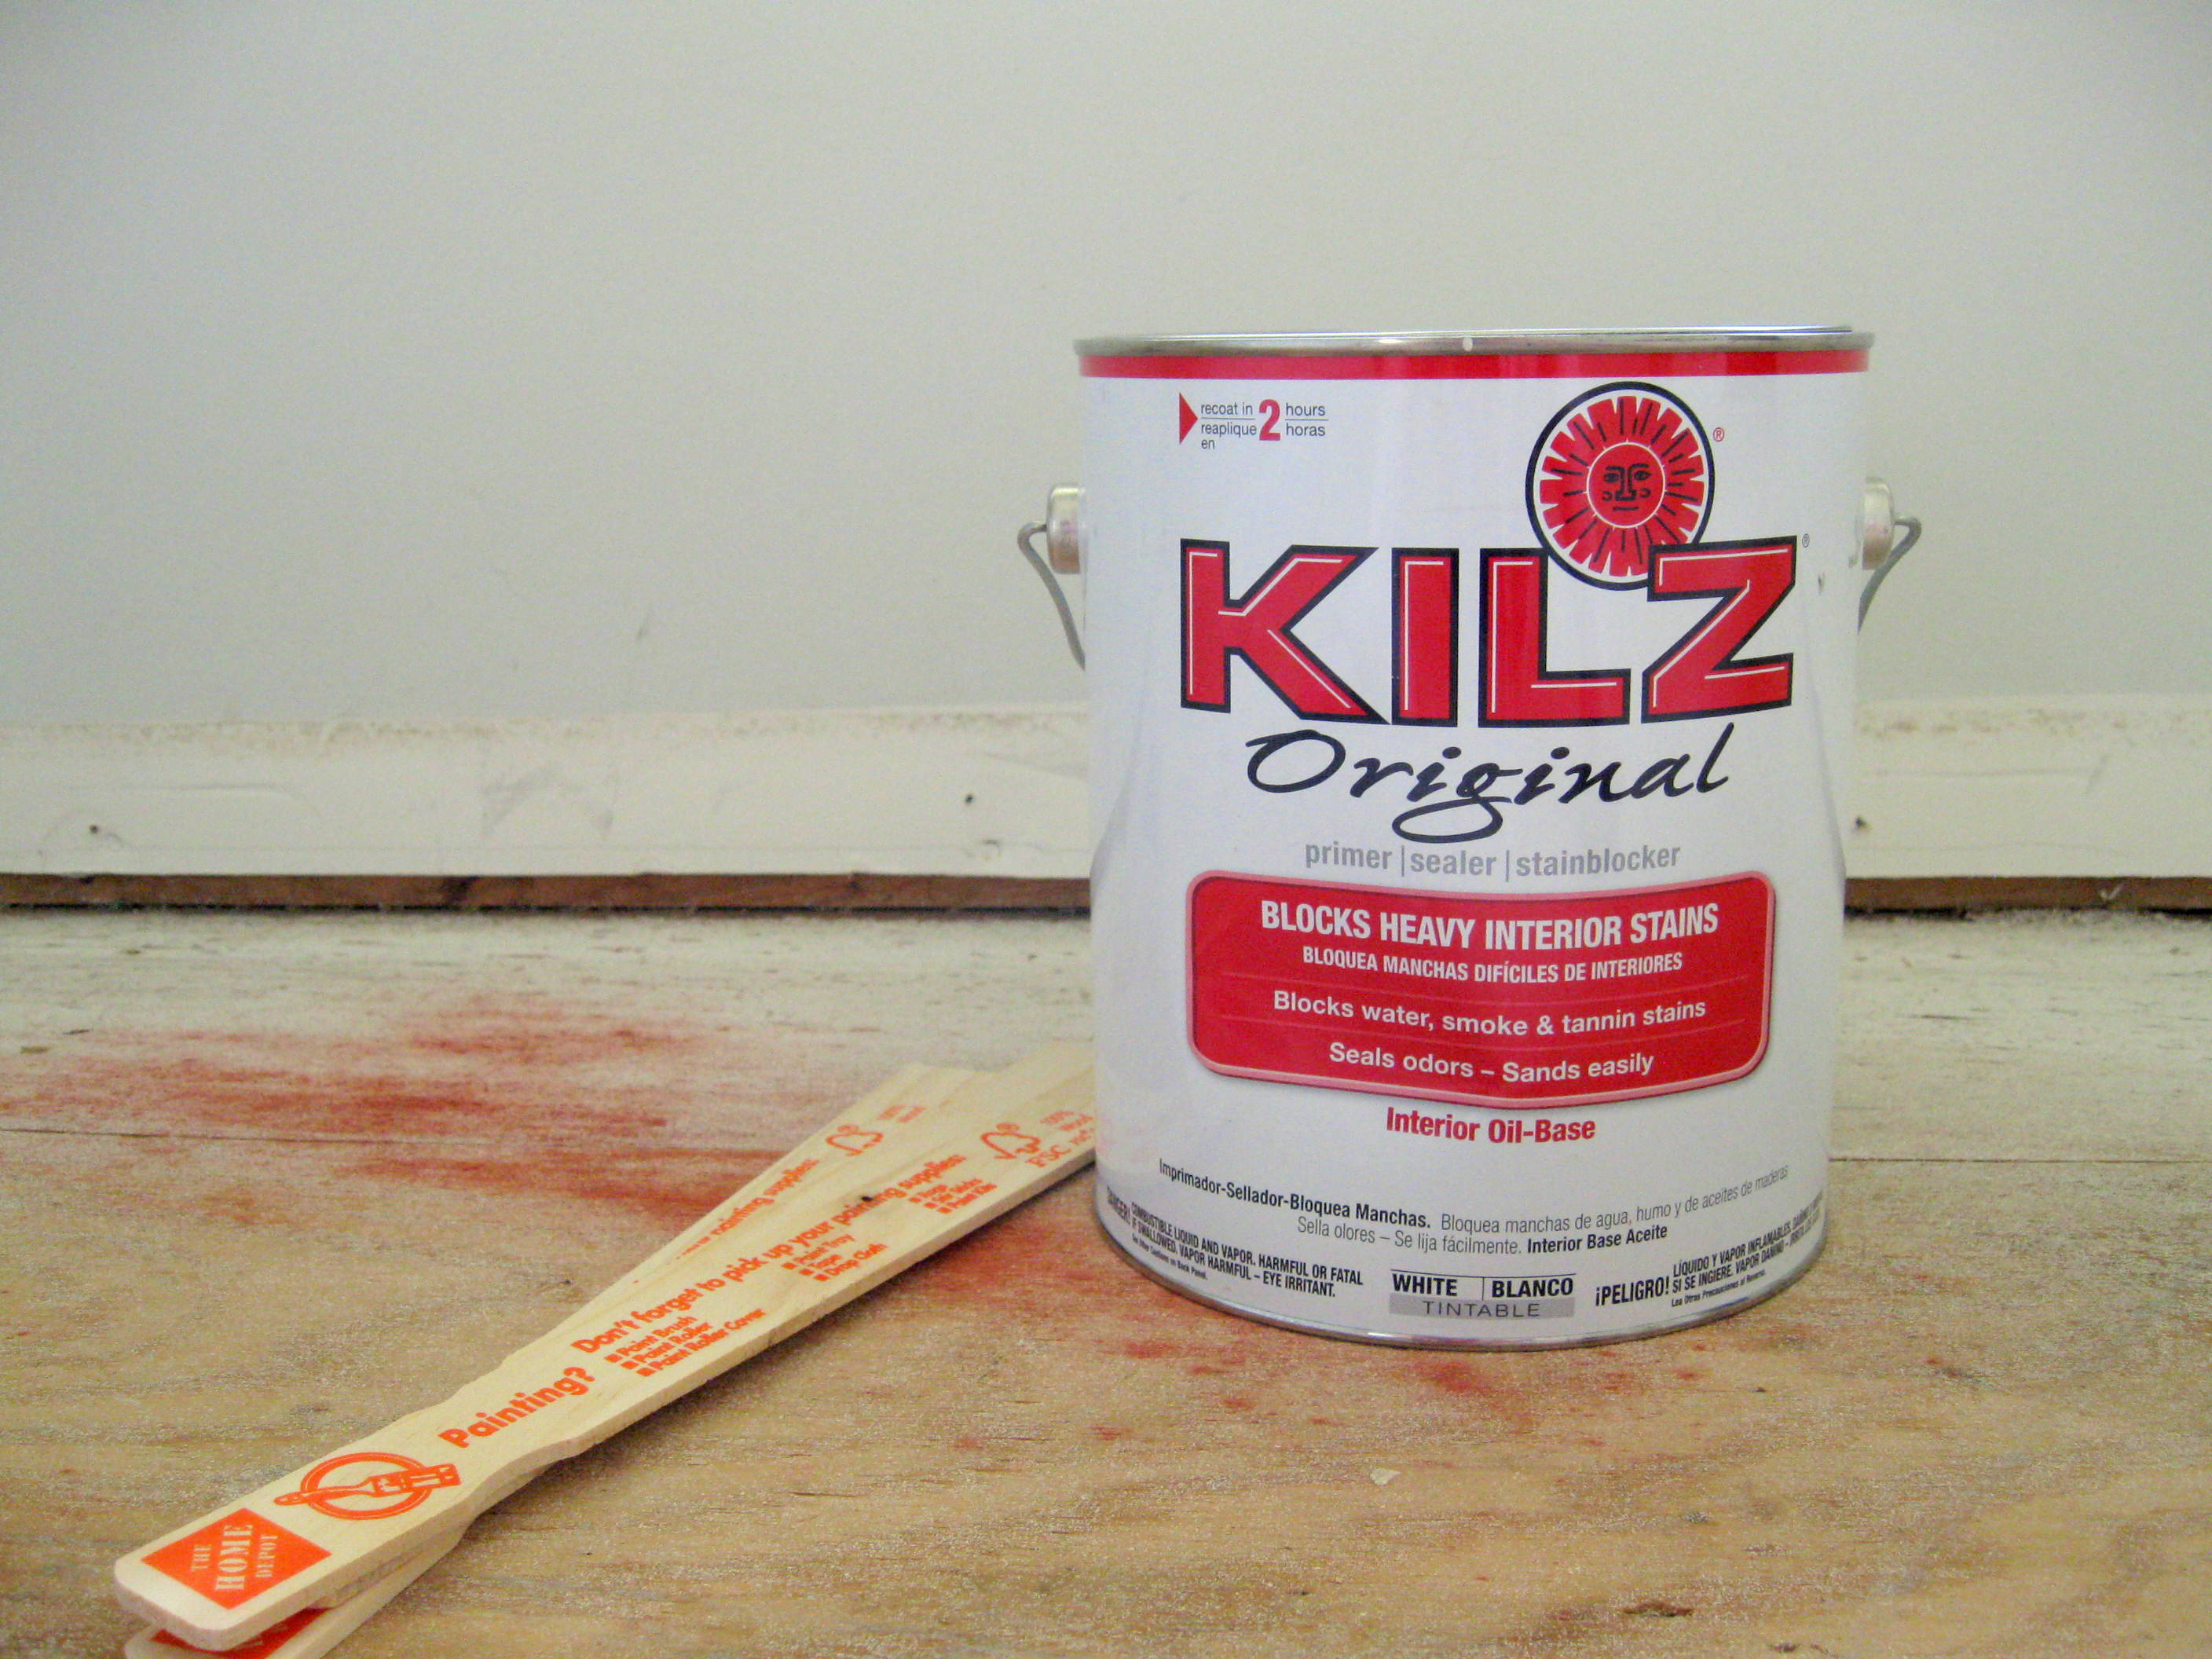 Eliminating Cat Urine Odor | A Kilz Original Review - Mrs